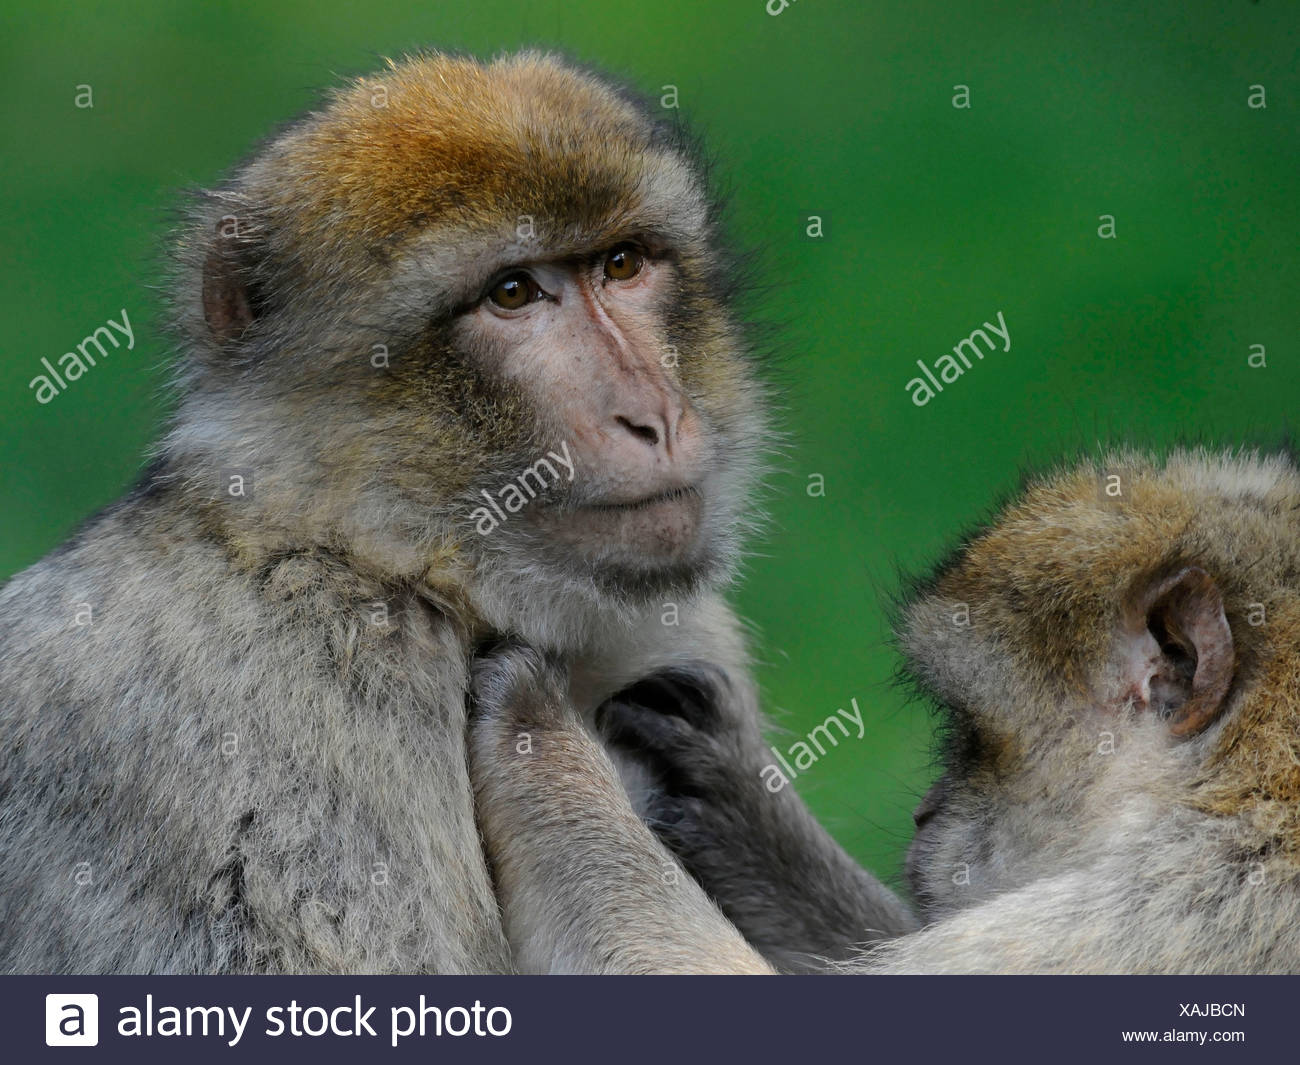 A barbary ape being groomed. - Stock Image